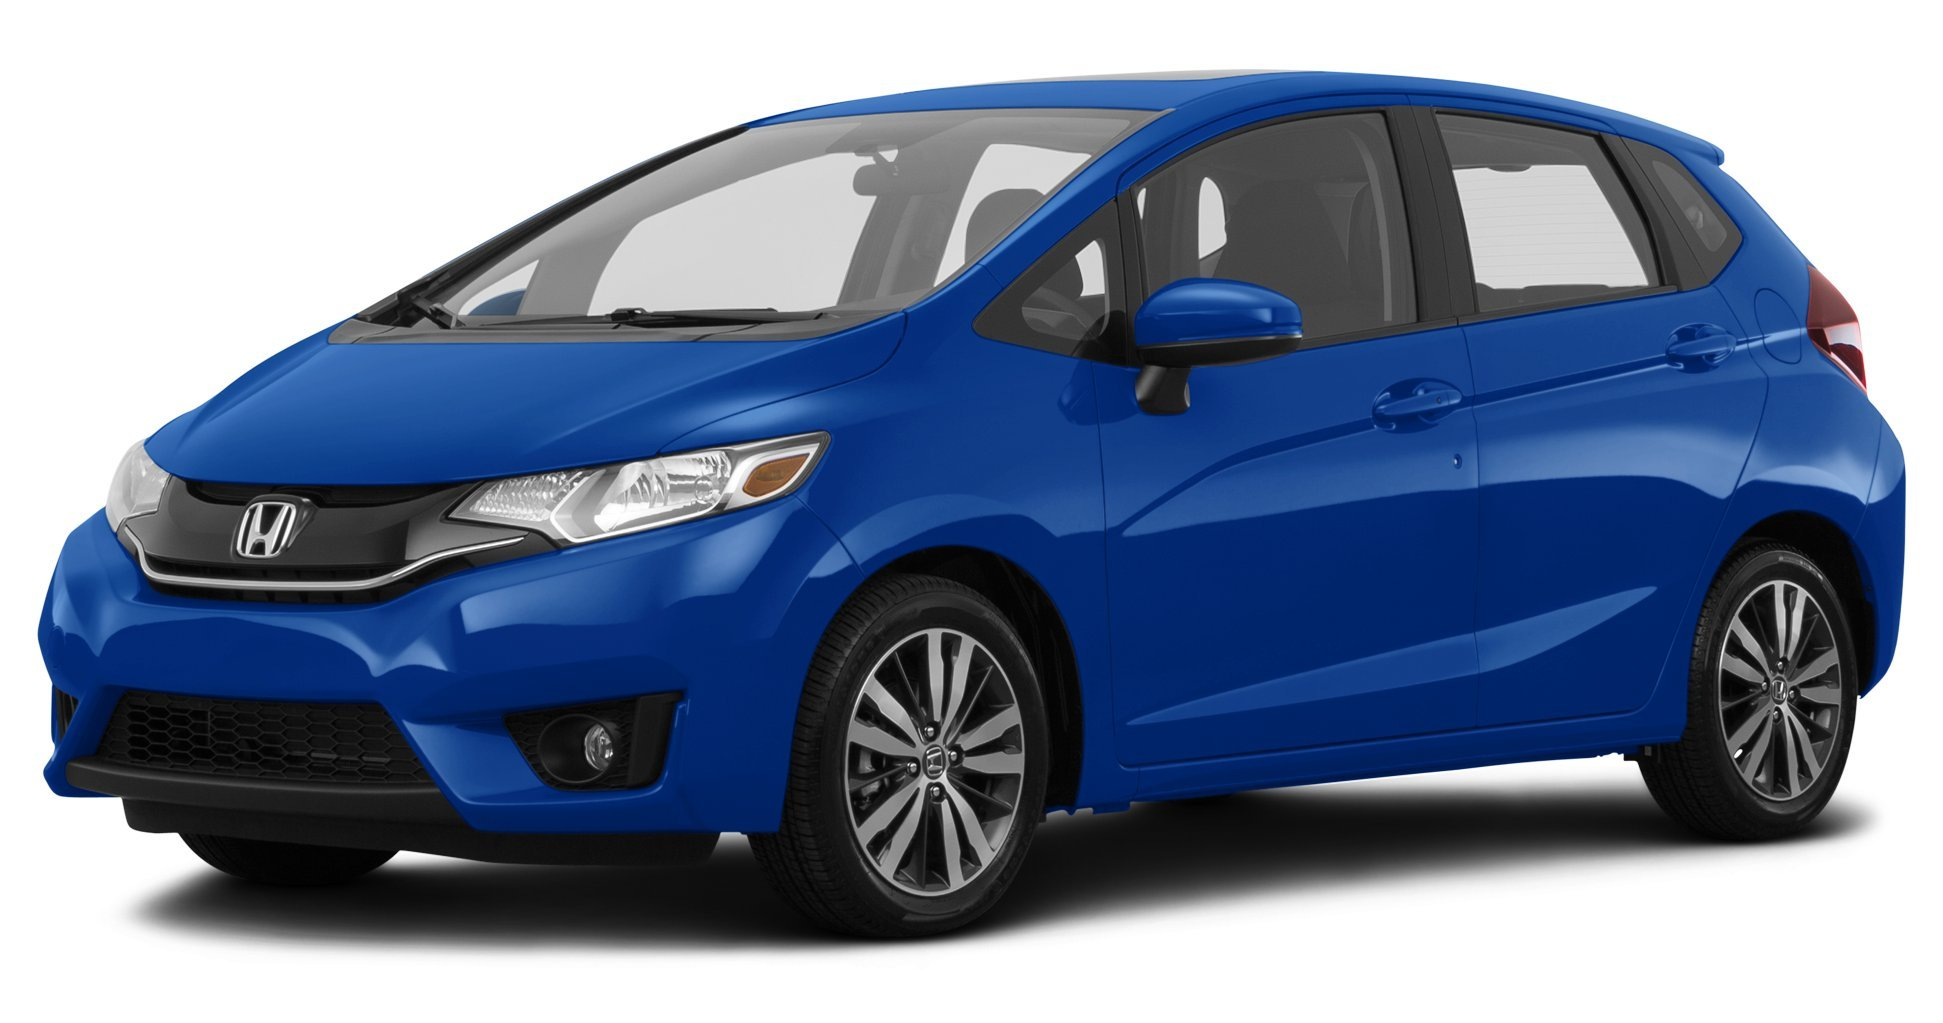 2015 honda fit reviews images and specs vehicles. Black Bedroom Furniture Sets. Home Design Ideas